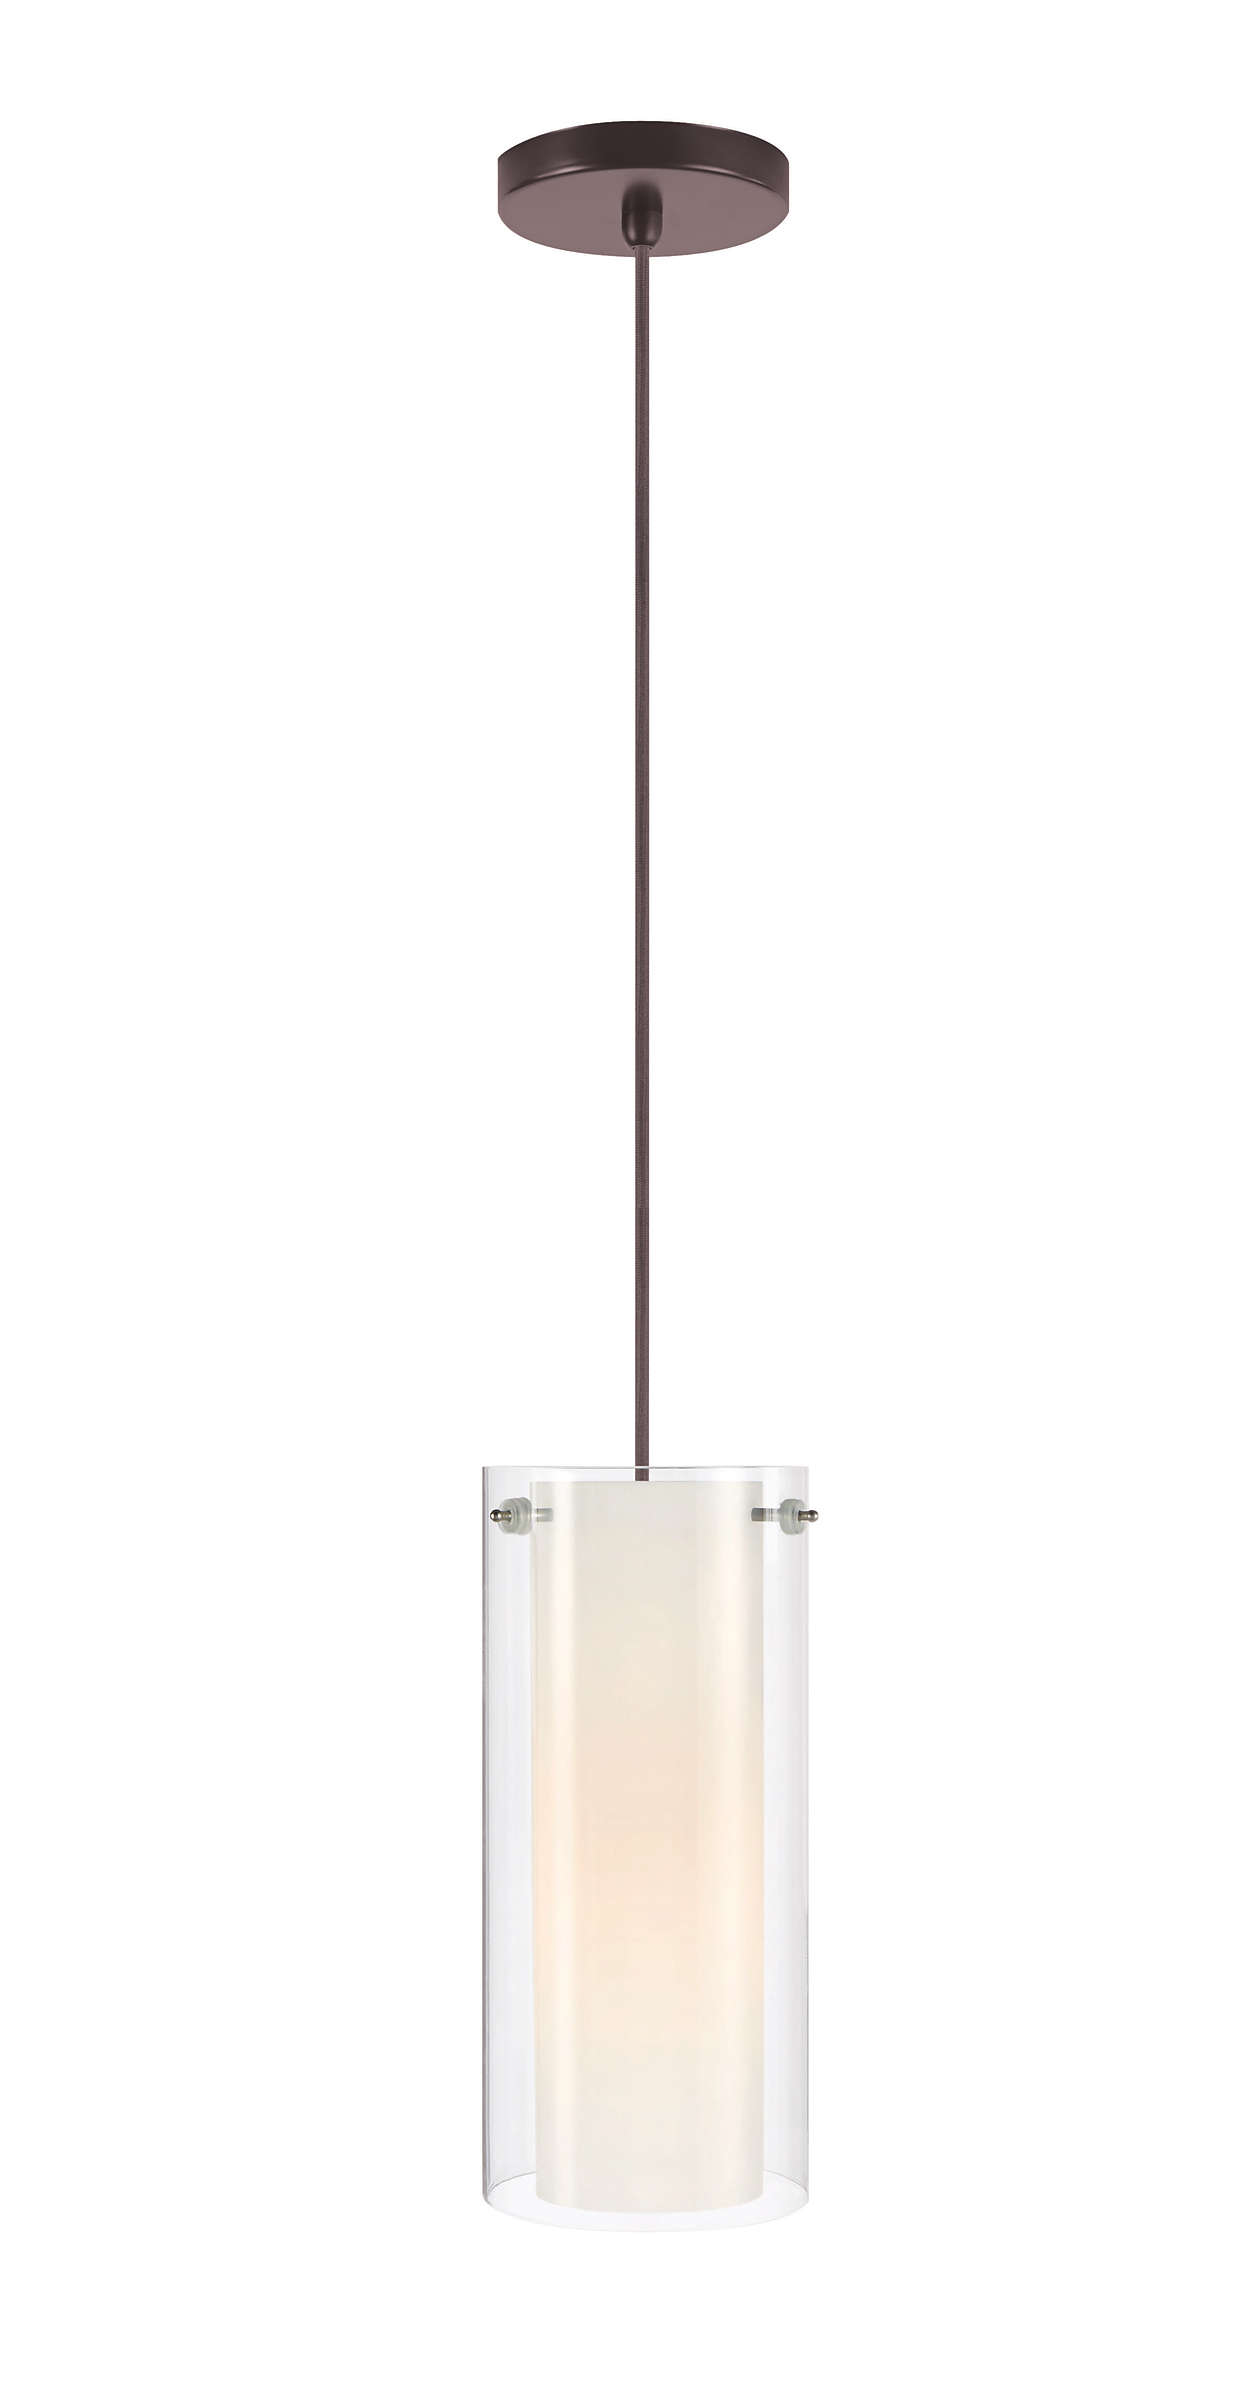 Hula 1-light pendant in Merlot Bronze finish